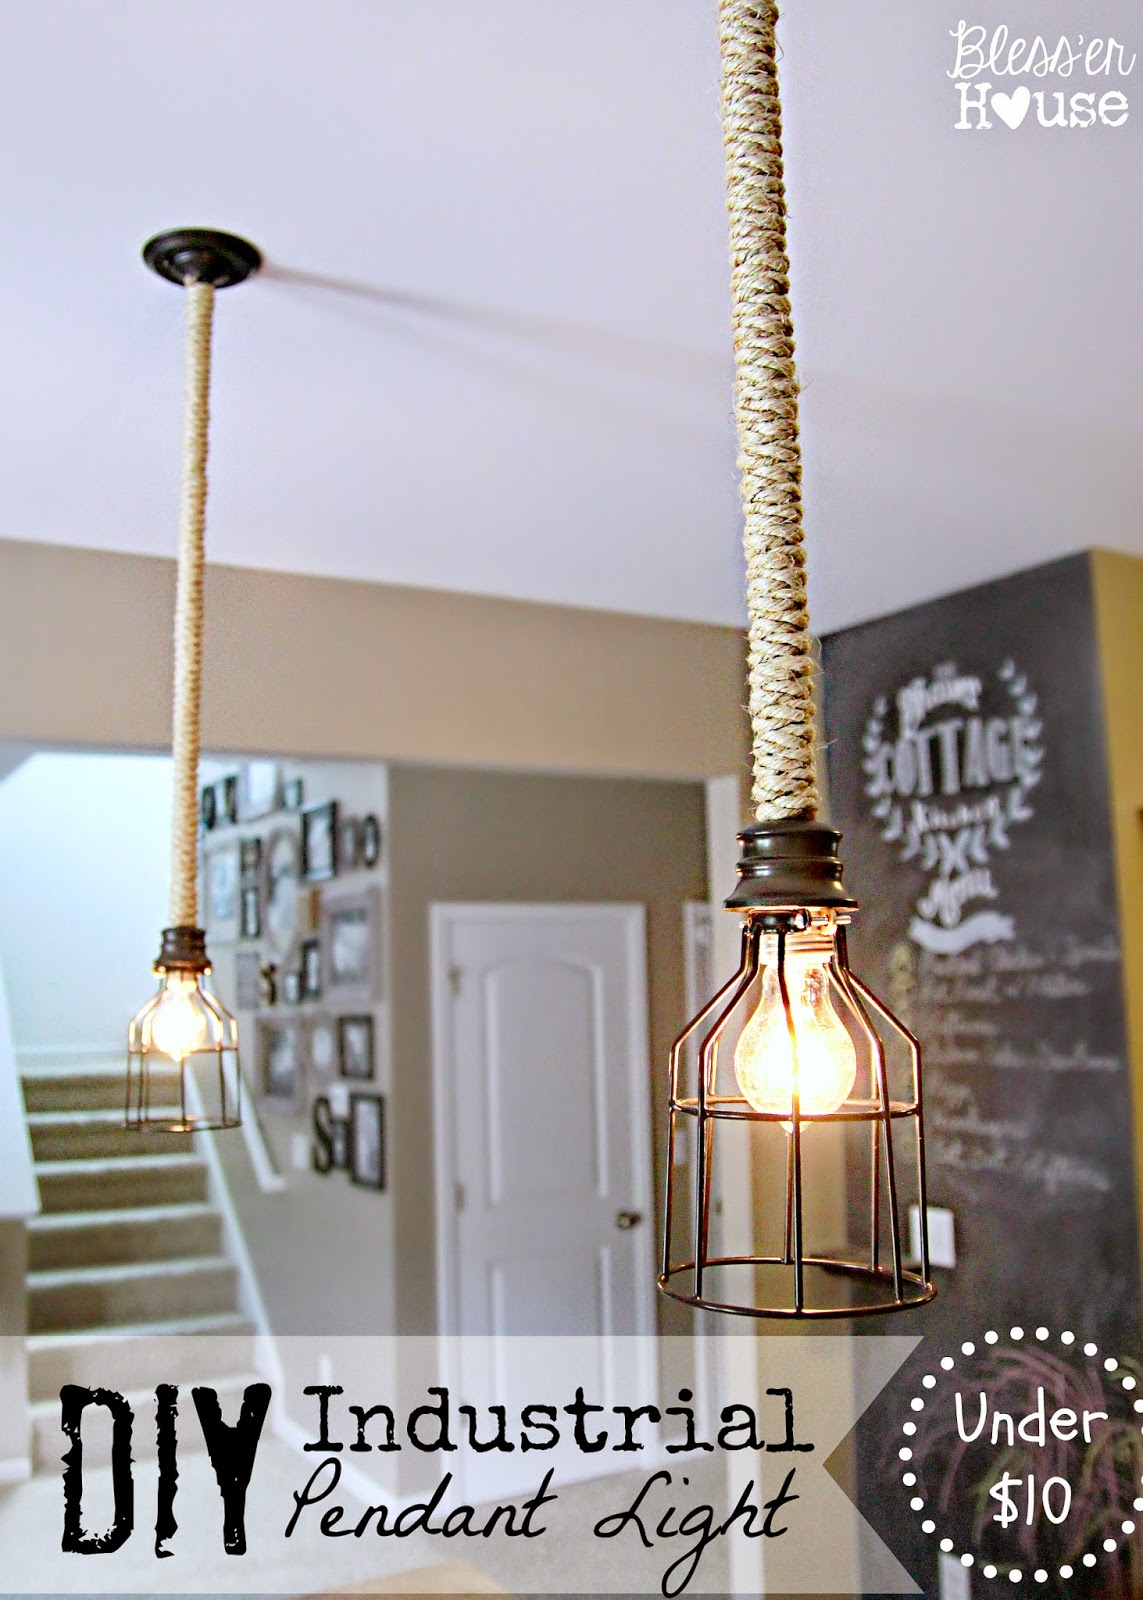 Diy industrial pendant light for under 10 blesser house diy industrial pendant light blesser house aloadofball Image collections